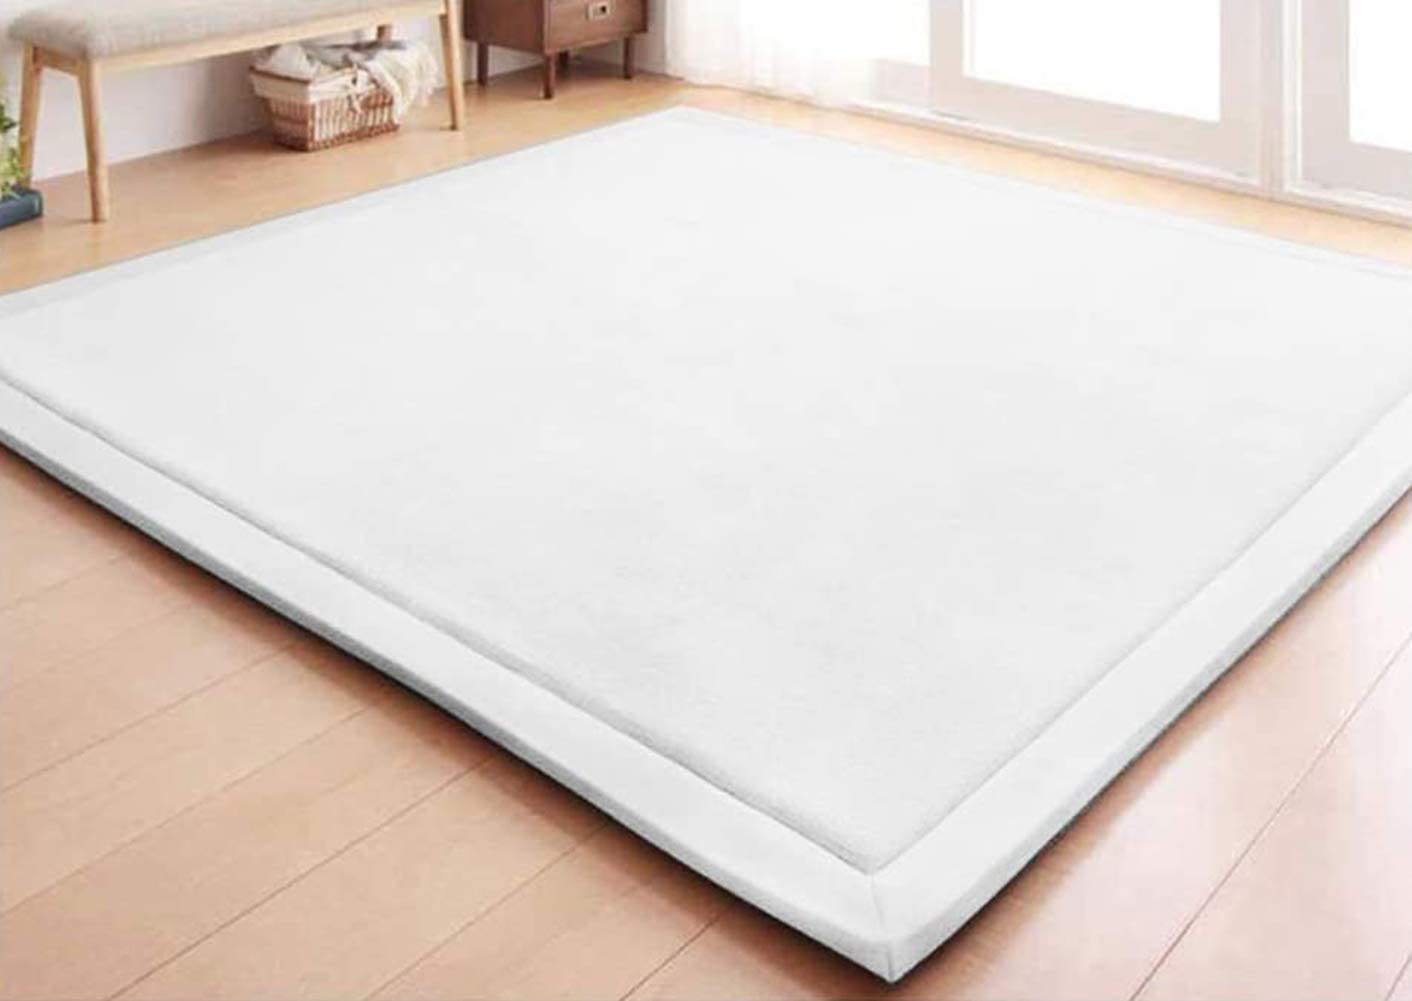 Nursery Rug-Baby Play Mat,Toddlers Crawling Carpet,Area Rug for Living Room Bedroom.Thick Tatami Foam Pad